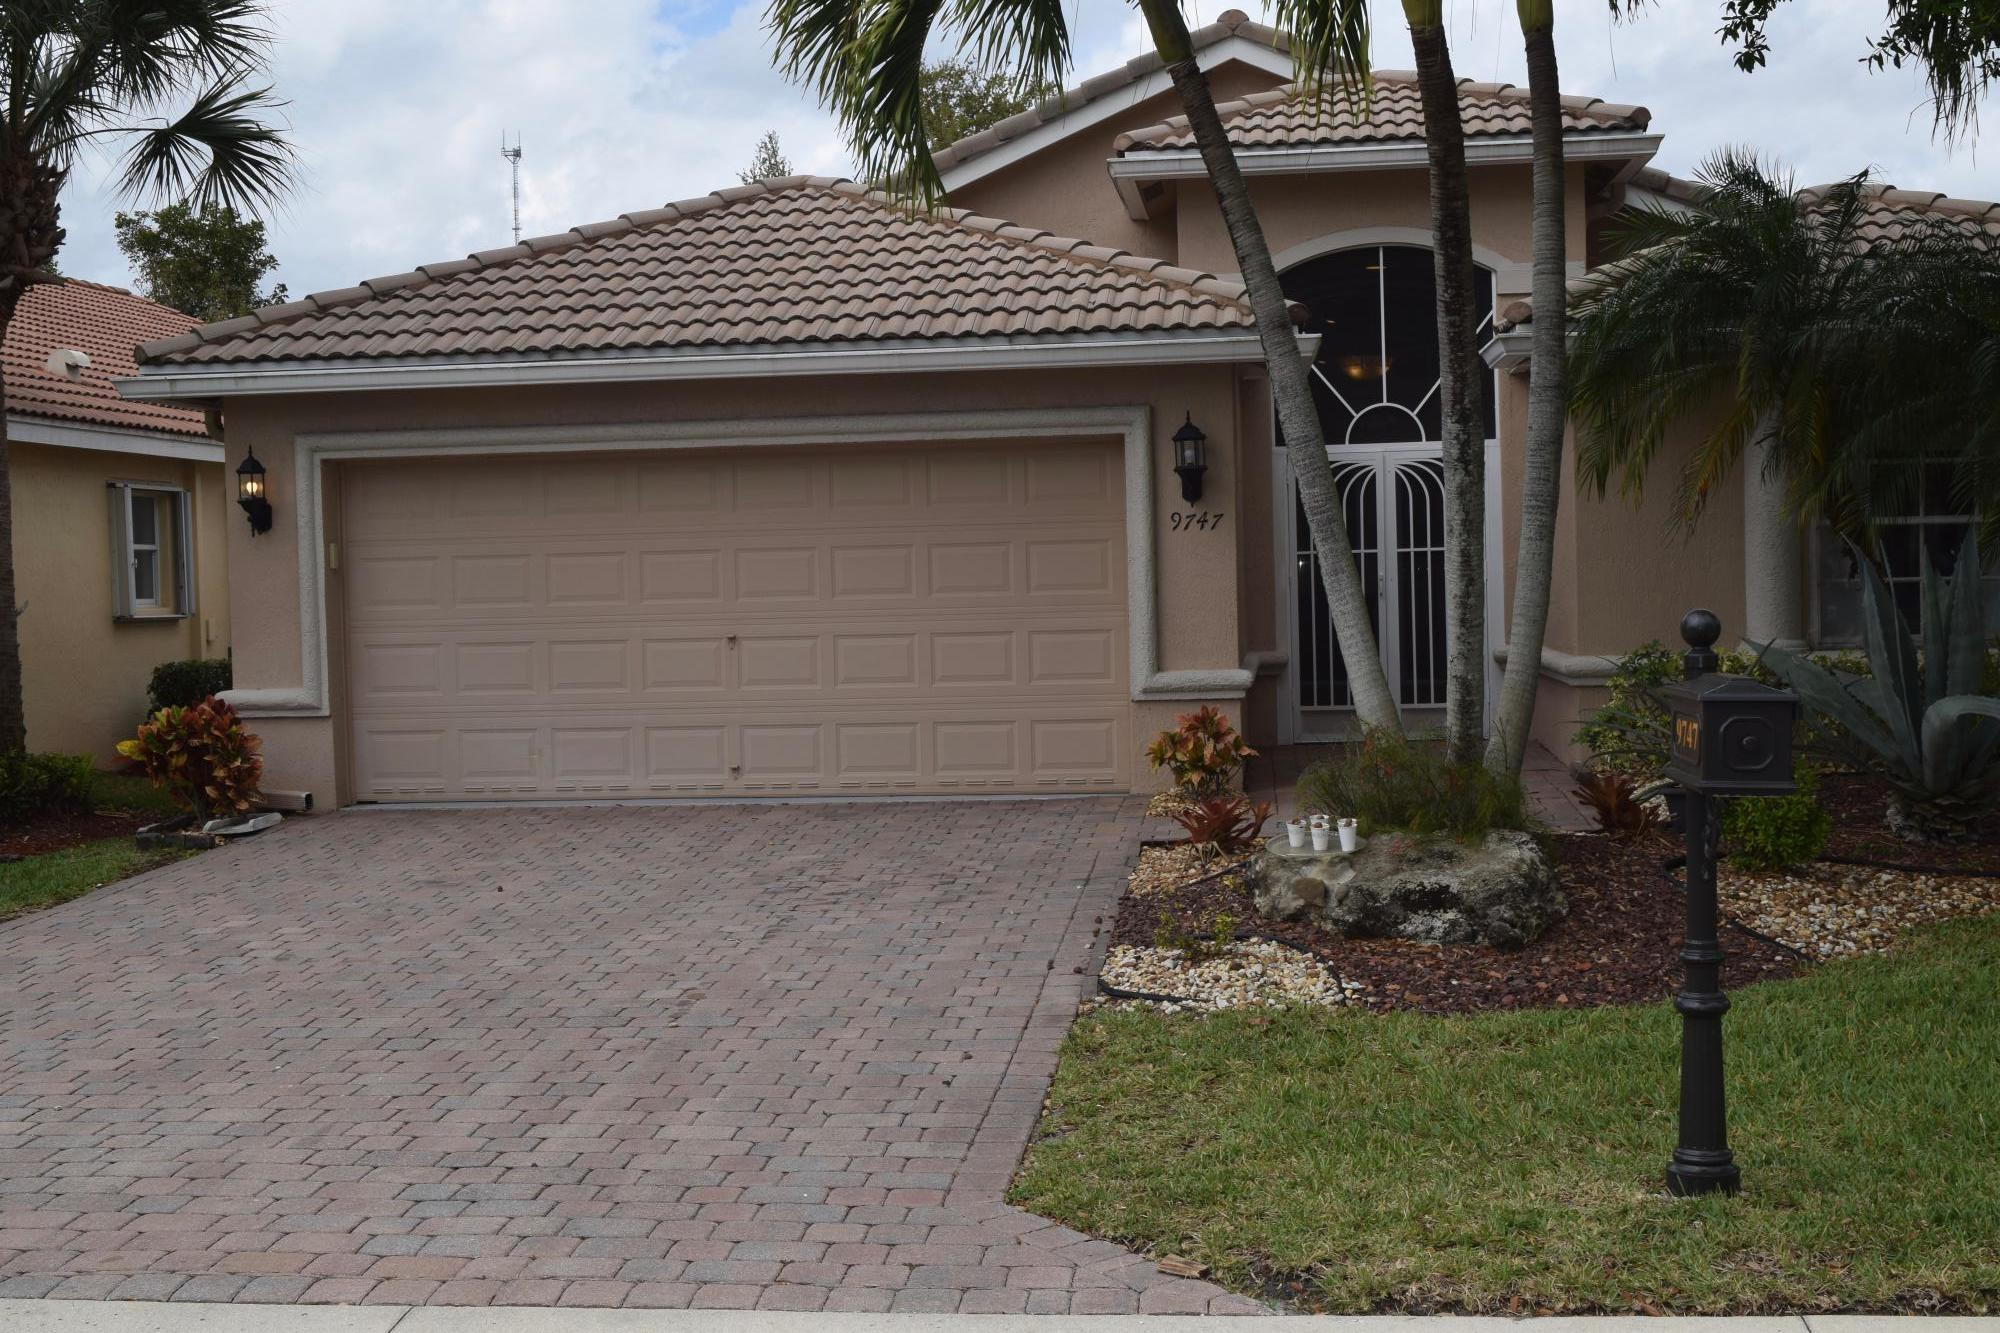 Bellaggio, Towne Park home 9747 Donato Way Lake Worth FL 33467